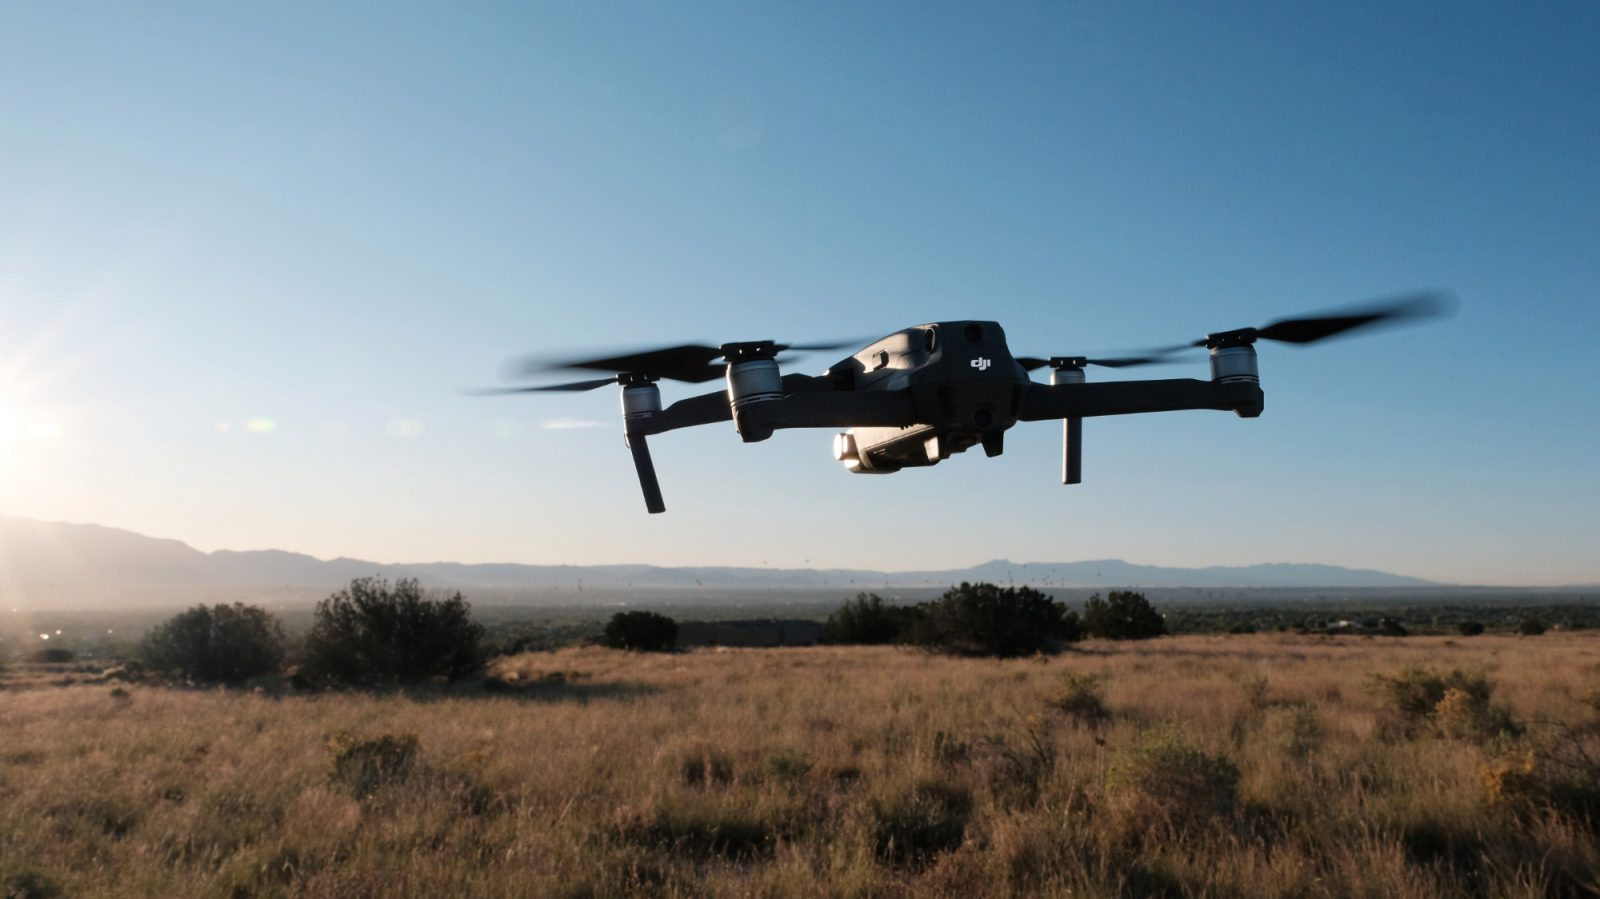 Coronavirus: DJI reopens offices in China and resumes shipping - DroneDJ